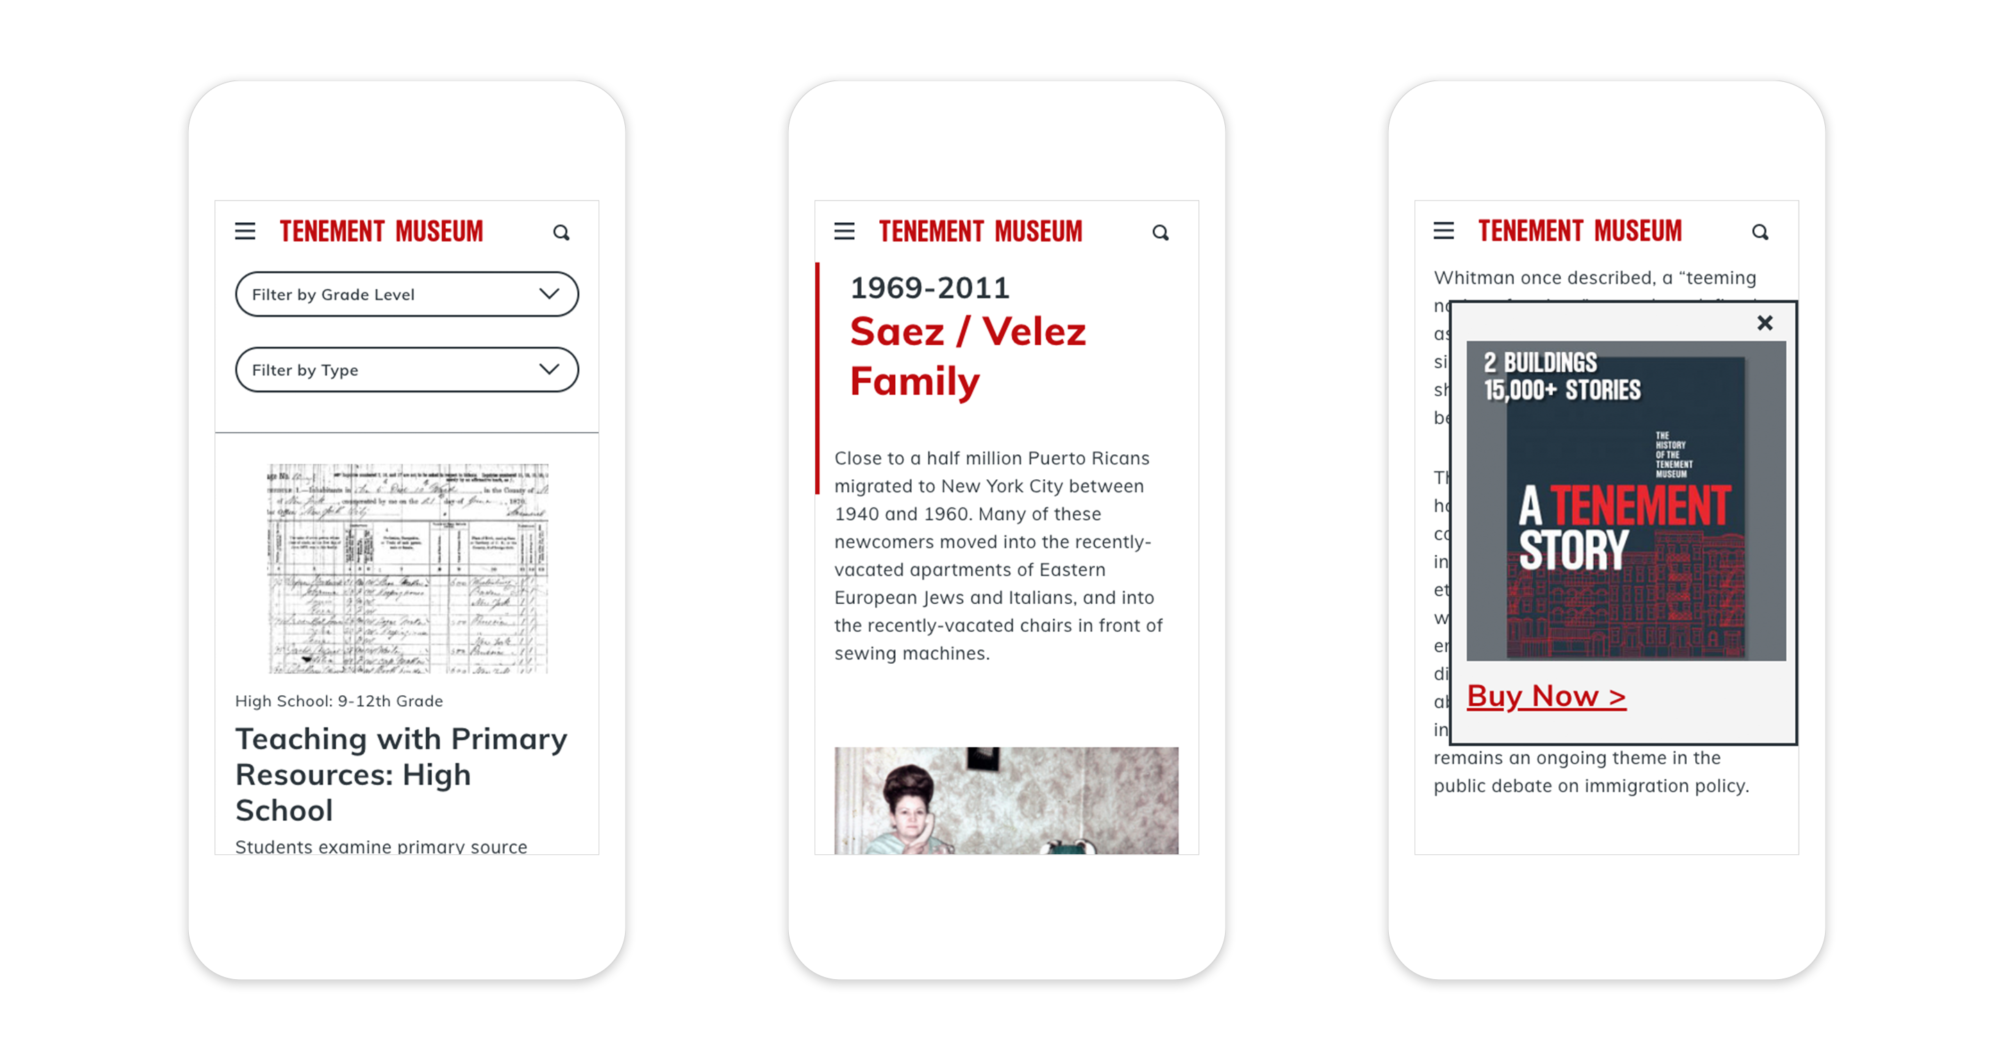 3 responsive mobile webpages showing the educational resource filter system, the interactive timeline showcasing the history of 97 Orchard Street, and a retail promotion pop-up.